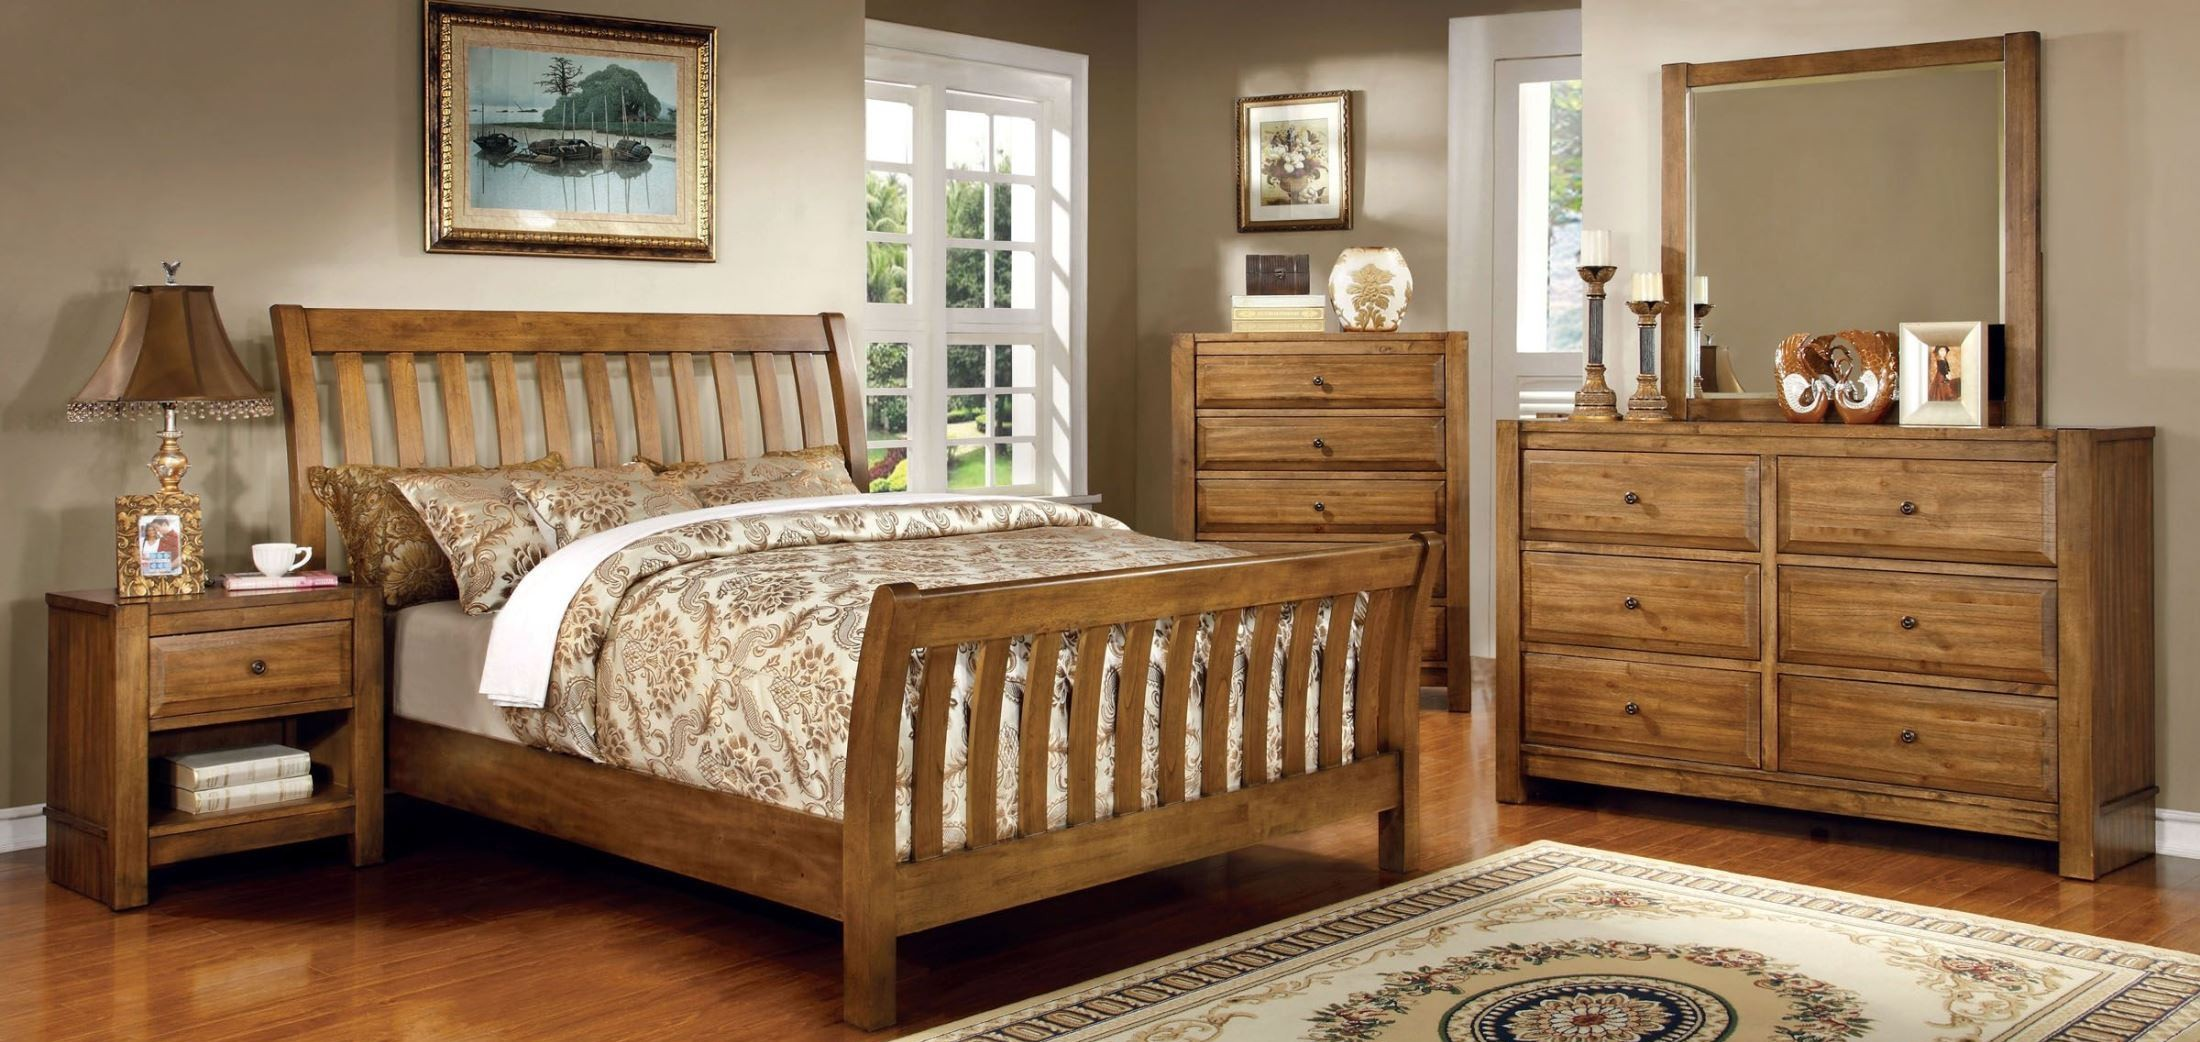 Conrad Rustic Oak Sleigh Bedroom Set From Furniture Of America Cm7970q Bed Coleman Furniture